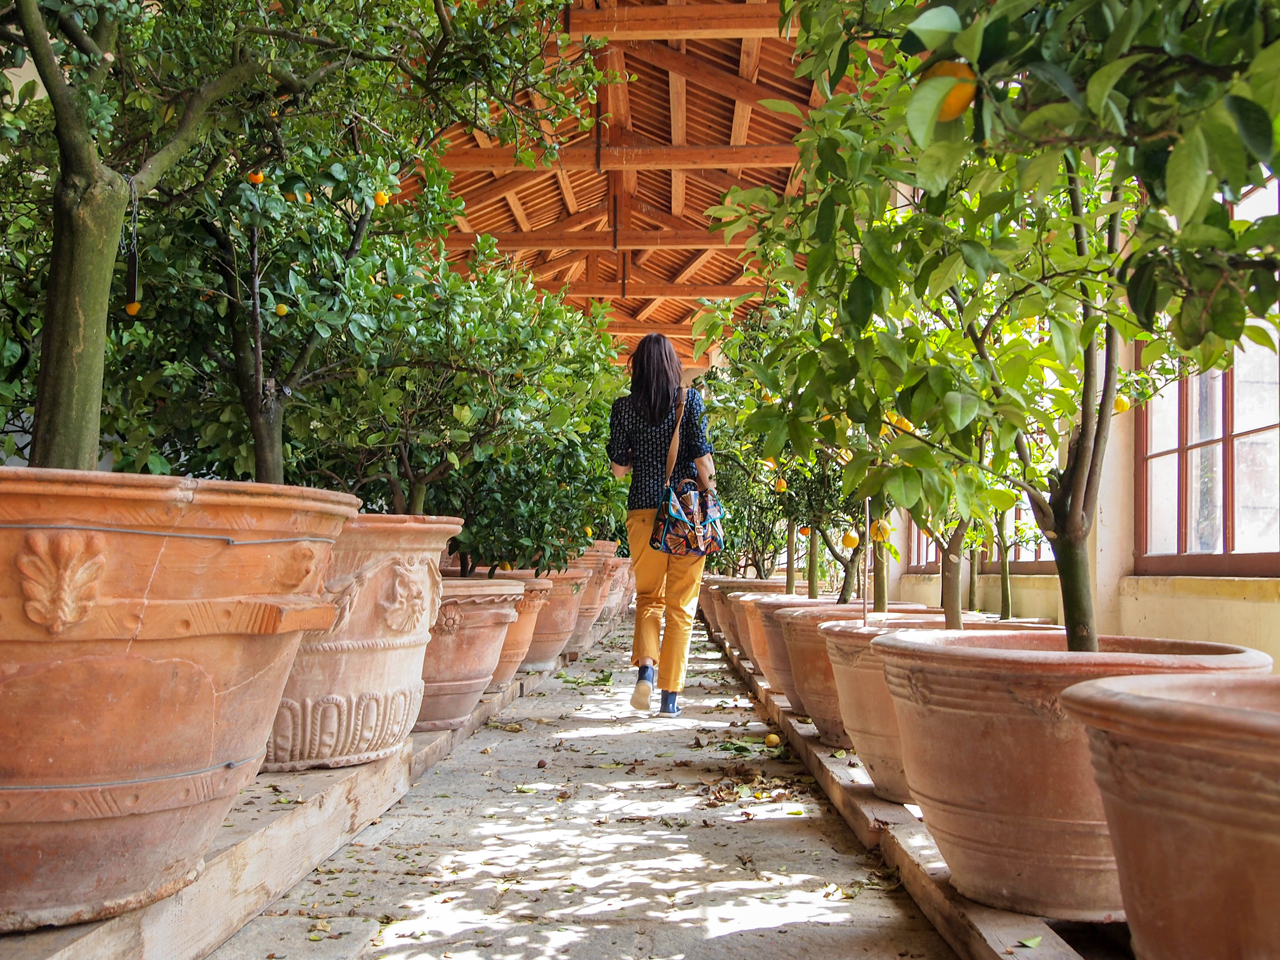 Enjoying the most beautiful scent of Limonaia in Villa Pisani